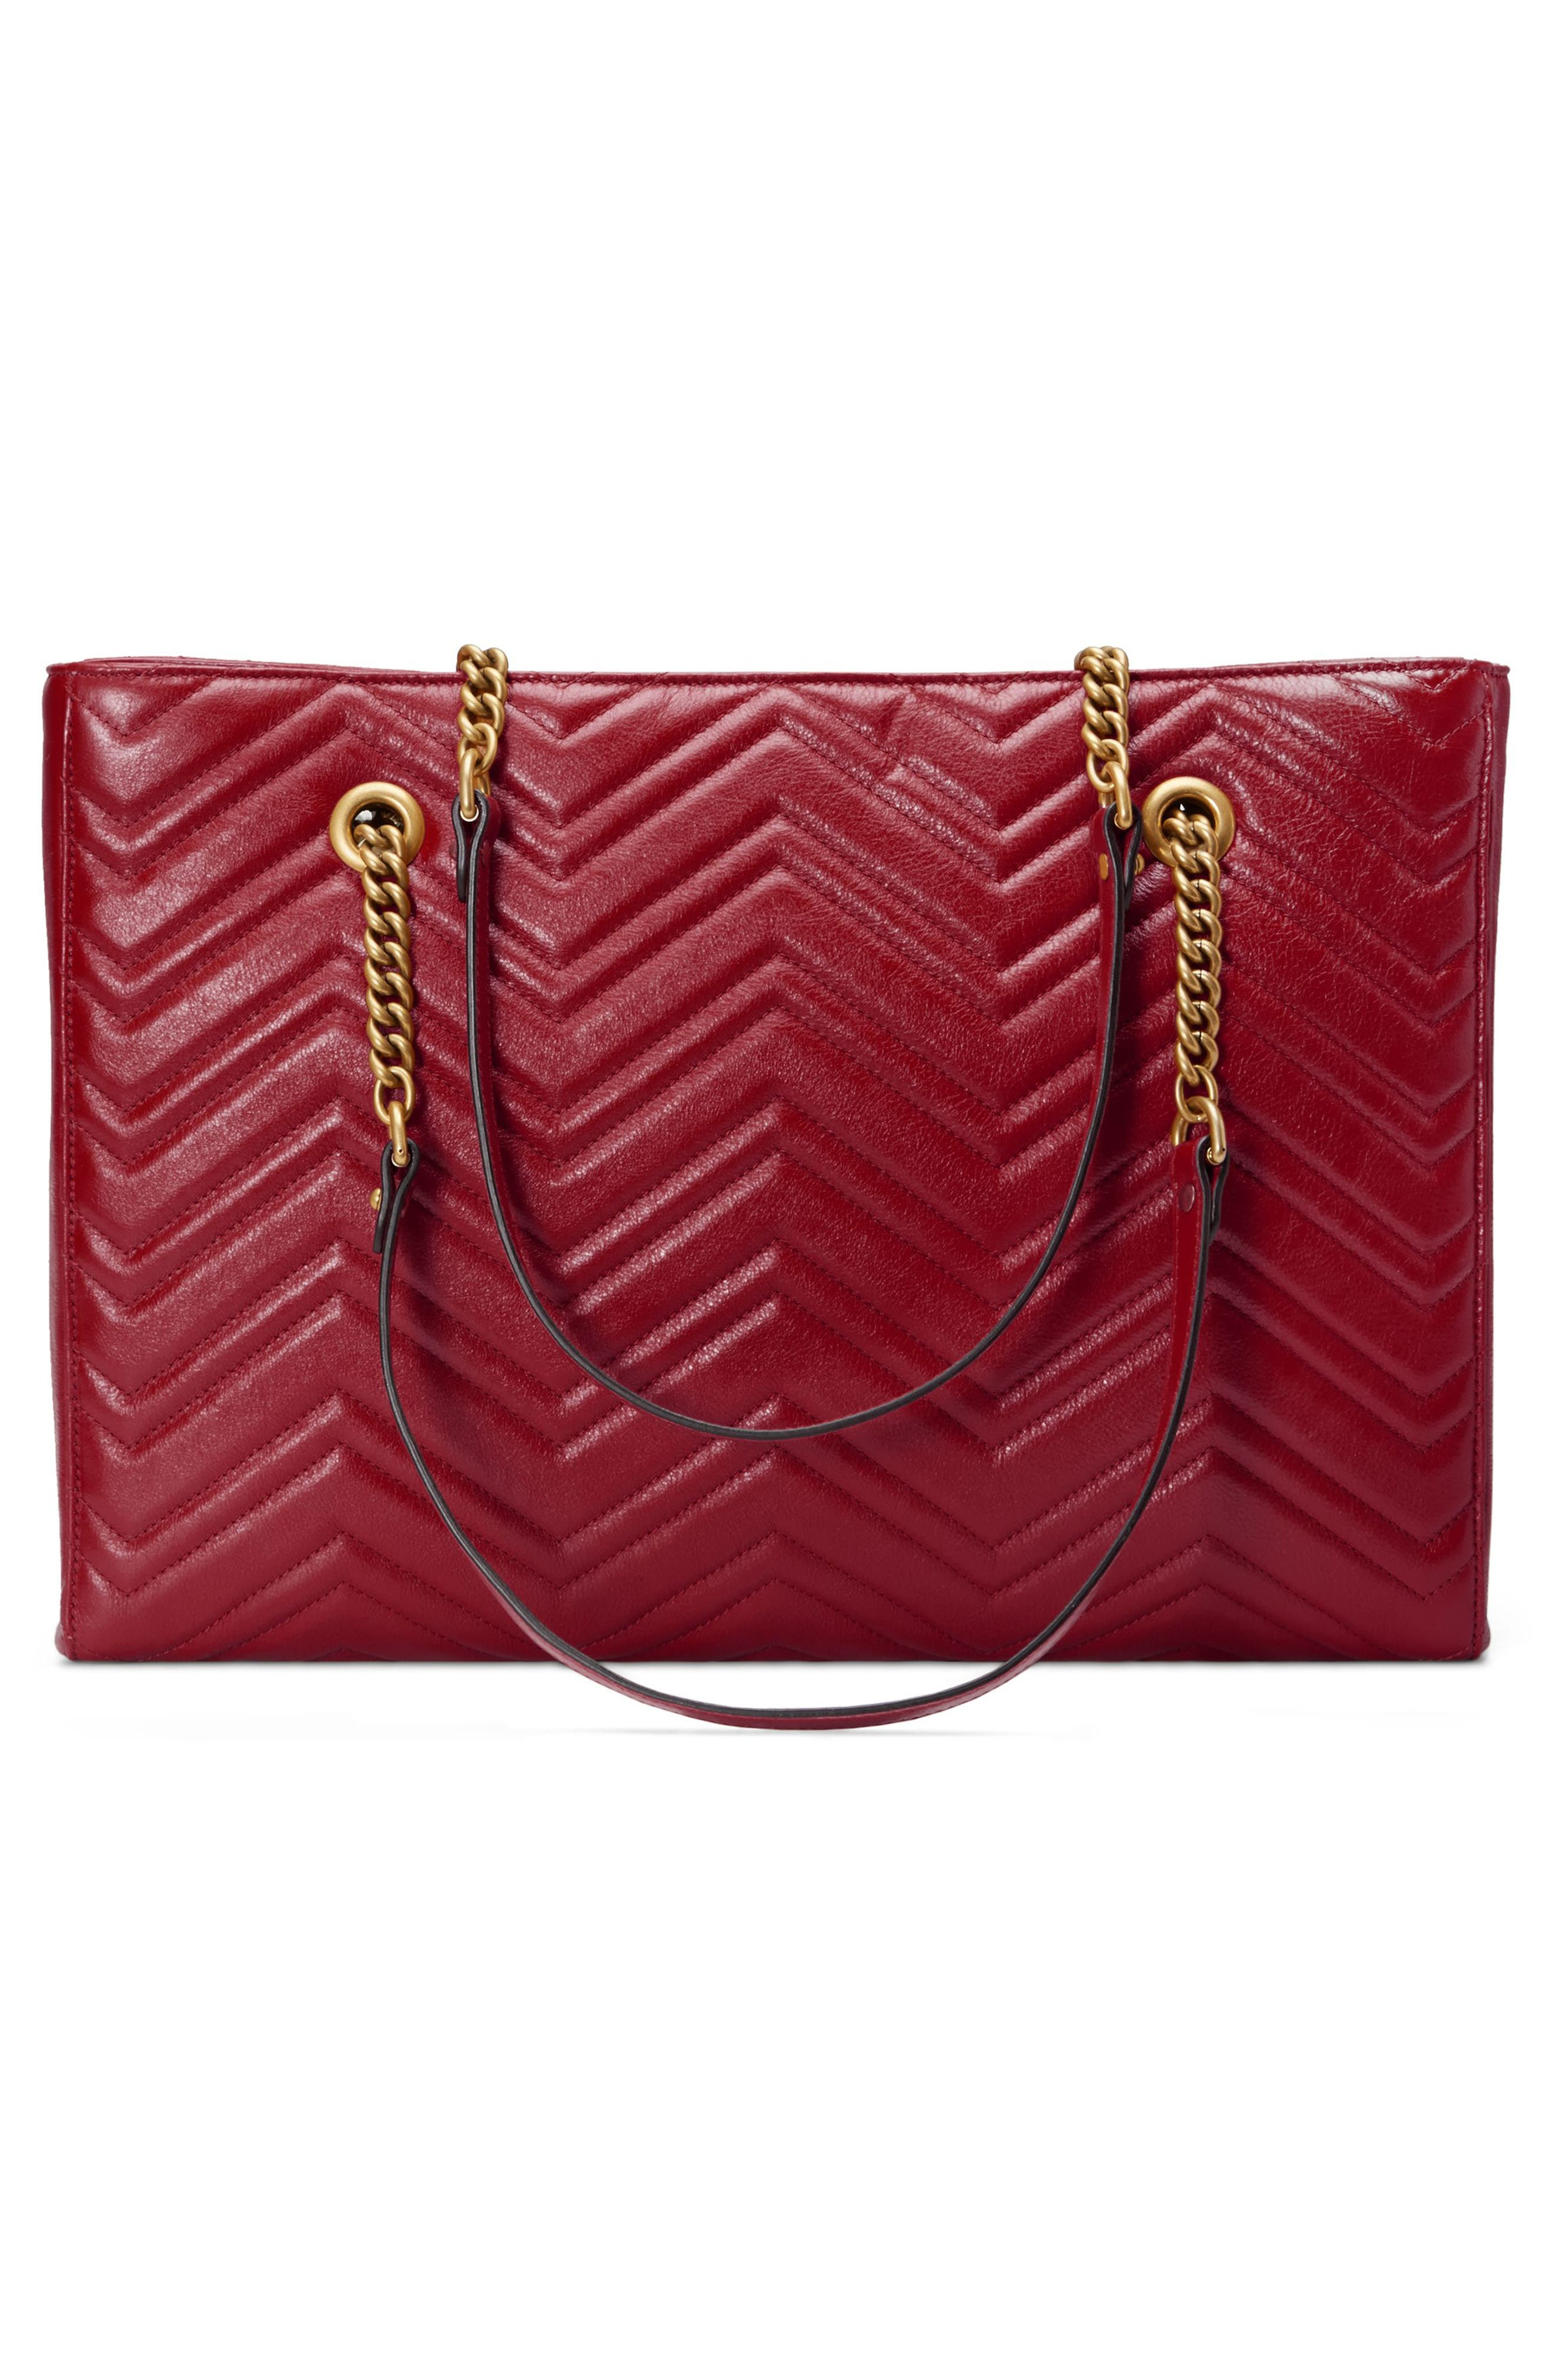 GG Marmont 2.0 Matelassé Medium Leather East/West Tote Bag,                             Alternate thumbnail 3, color,                             CERISE/ CERISE